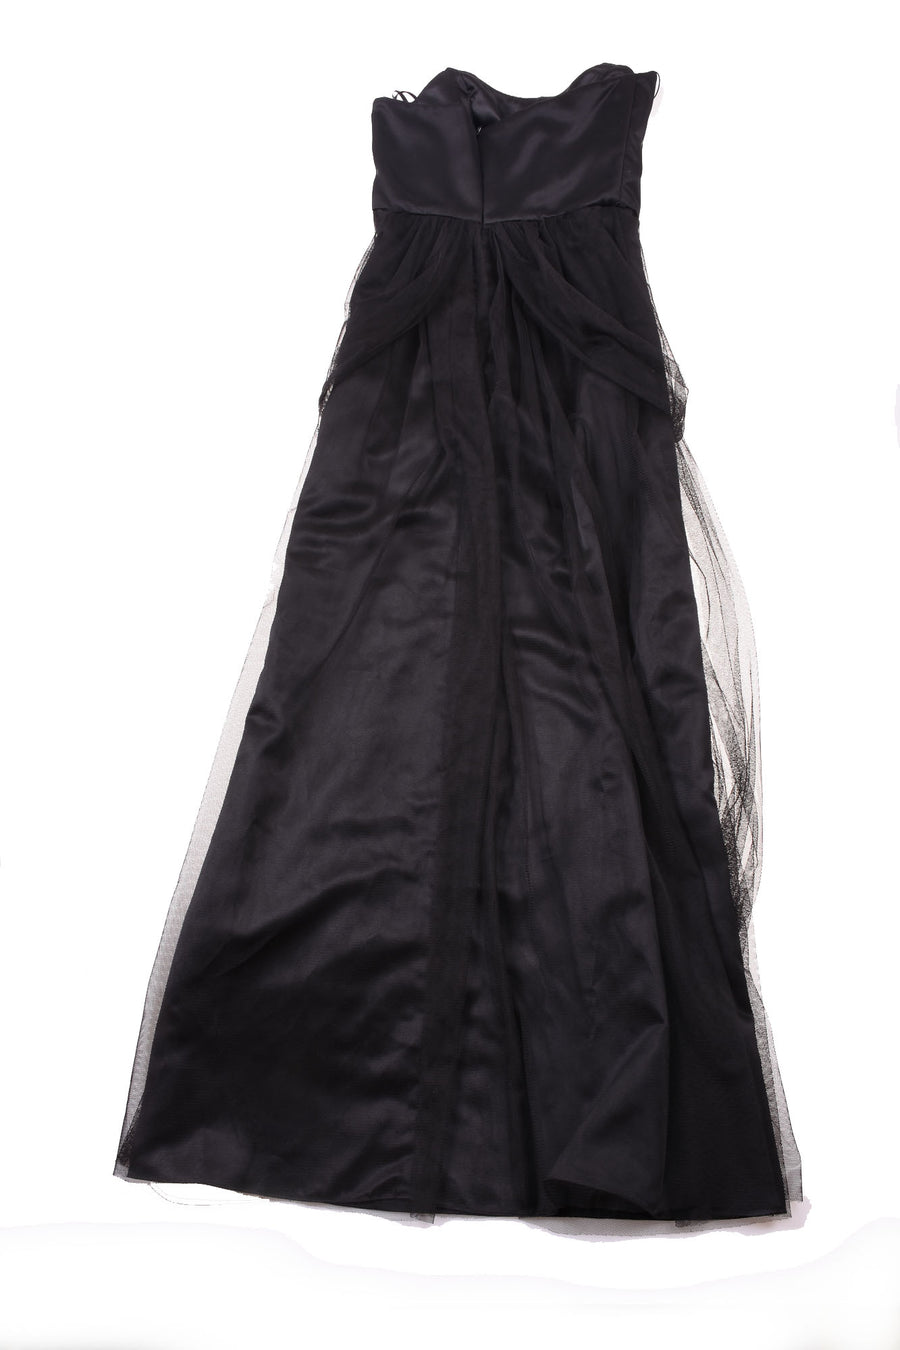 NEW Vivian Diamond Women's Dress 4 Black